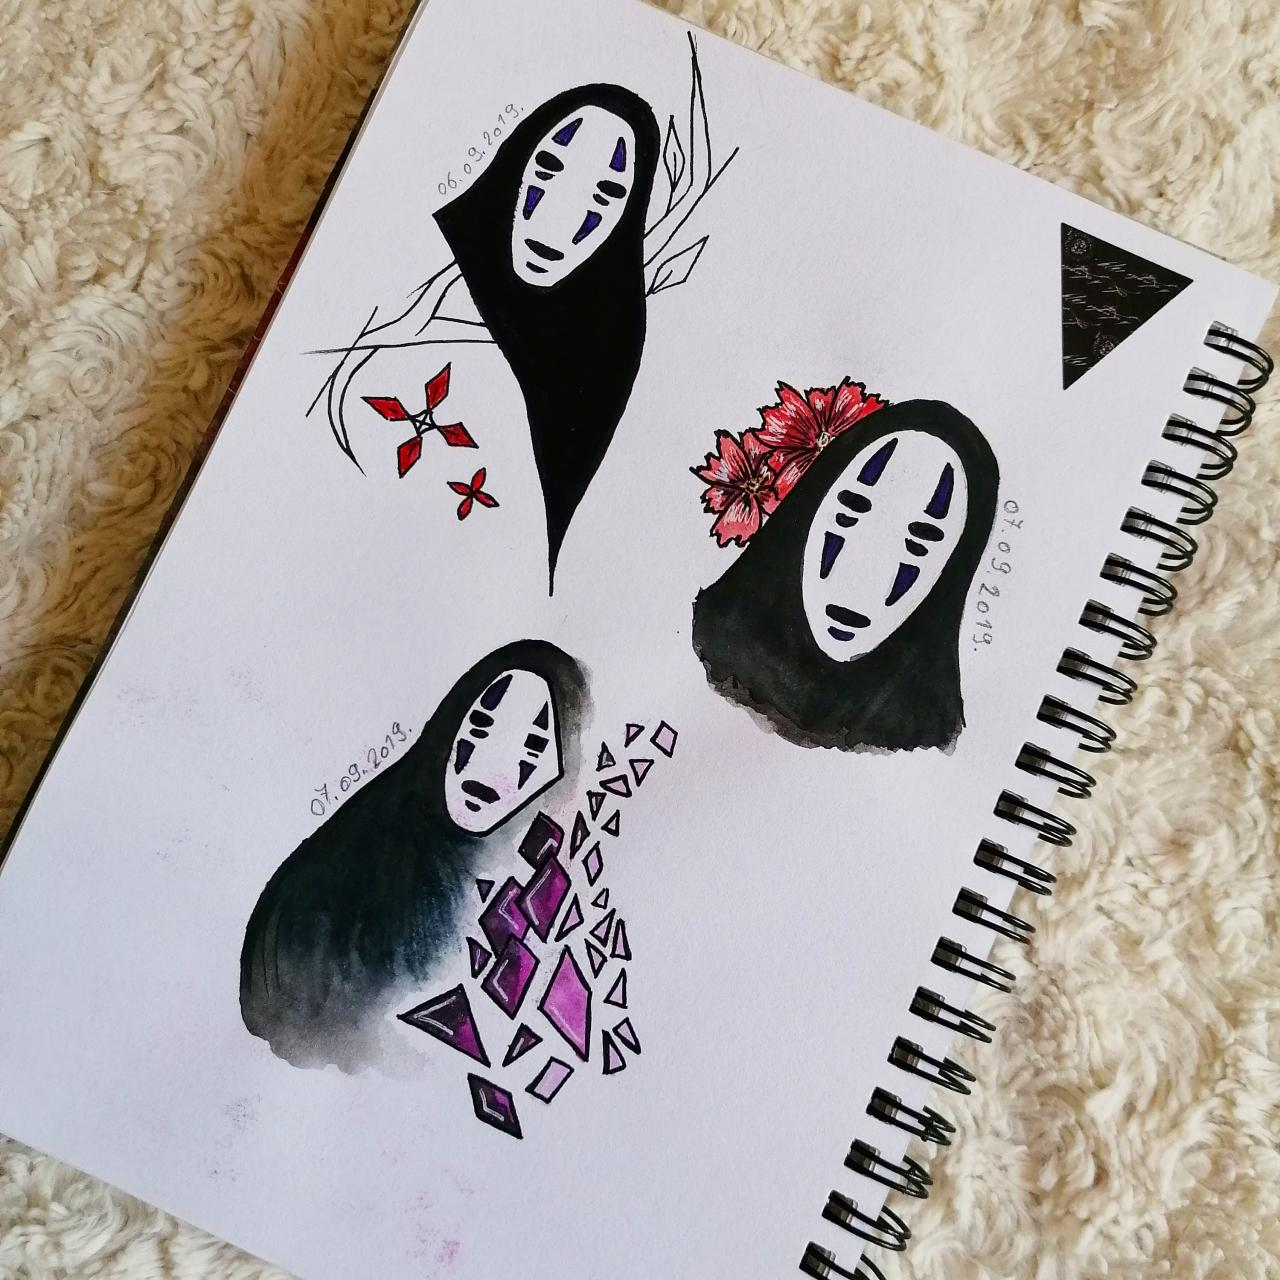 No Face tattoo ideas that I did for my friend a while ago. They definitely need some polishing but I like them.